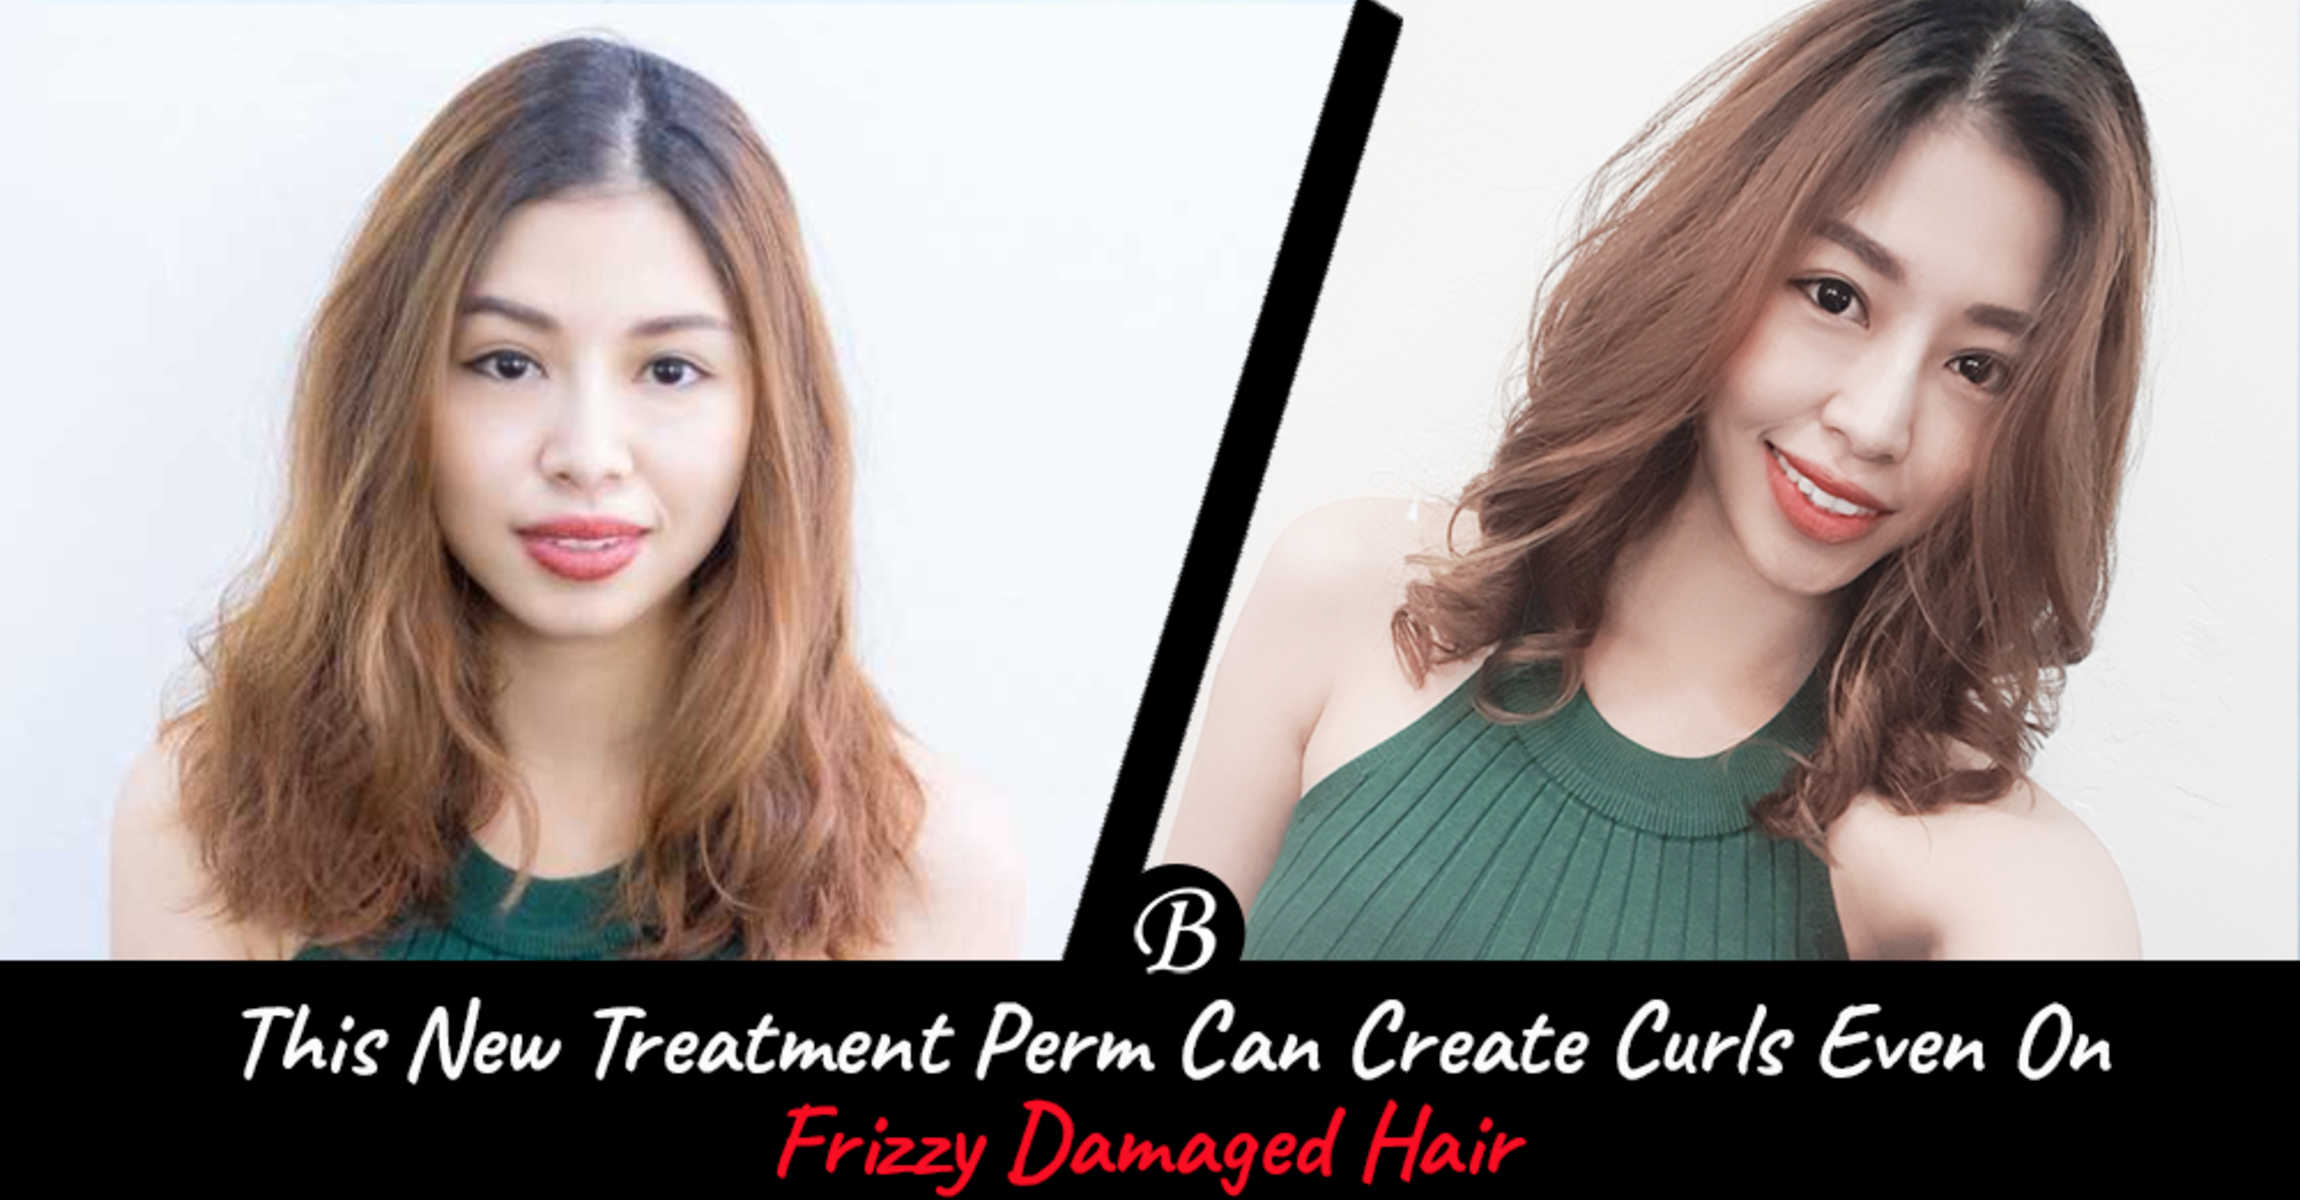 Who Says Frizzy Damaged Hair Cannot be Permed? Mommy O Got Beautiful Curls Despite Frizzy Hair from Focus Hairdressing.